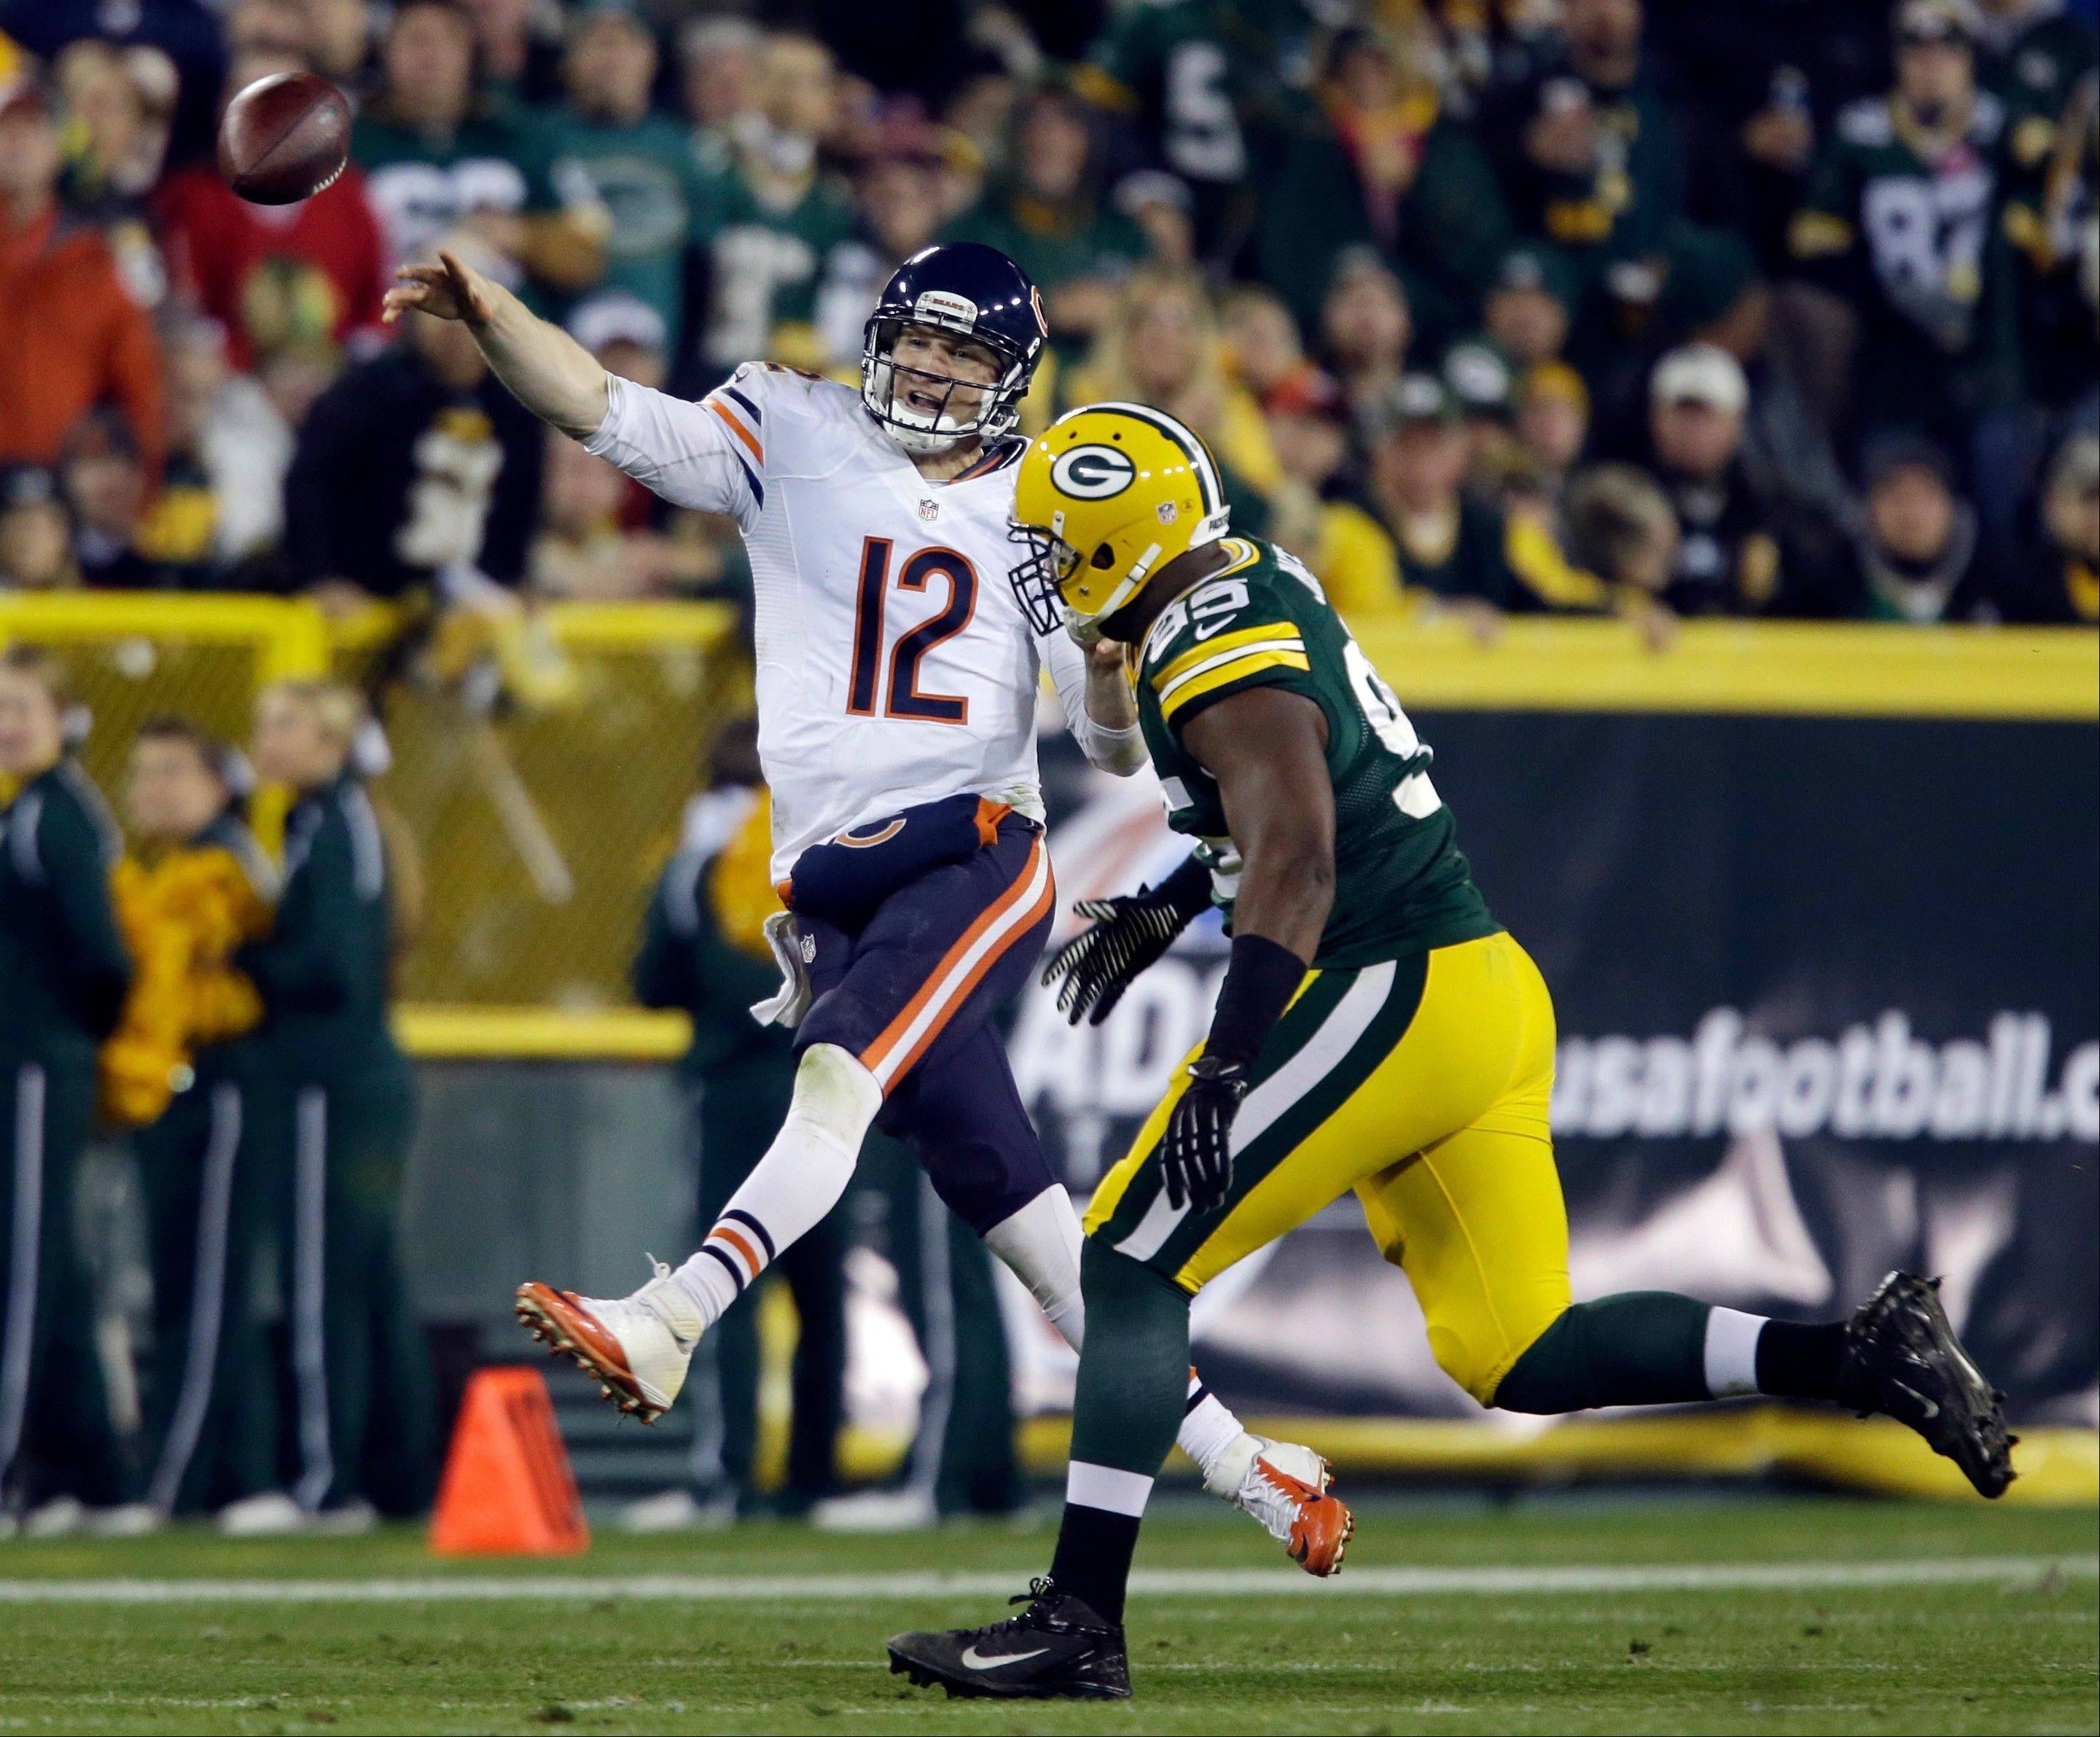 Chicago Bears quarterback Josh McCown throws past Green Bay Packers' Datone Jones during the second half .